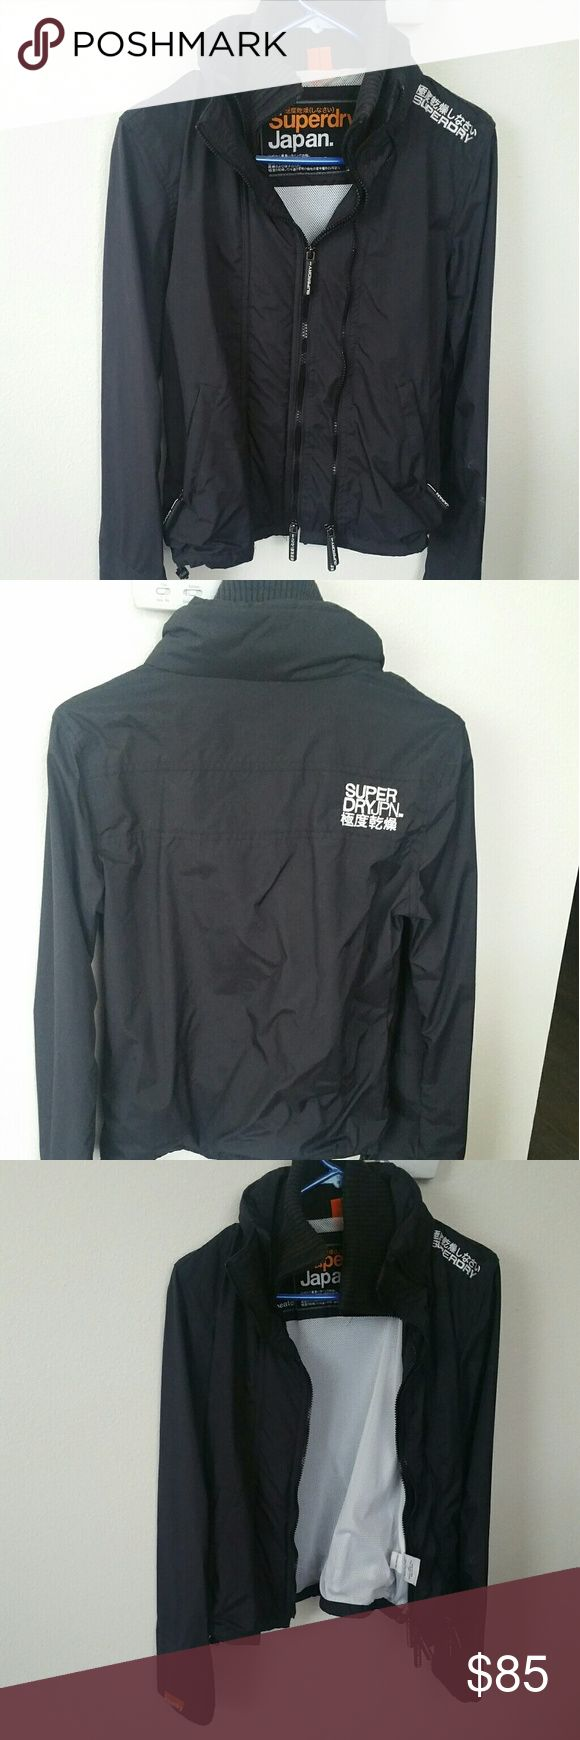 **final sale** Superdry jacket Like new condition. Has double zipper. Perfect for fall/west coast winter weather/rainy day... Superdry Jackets & Coats